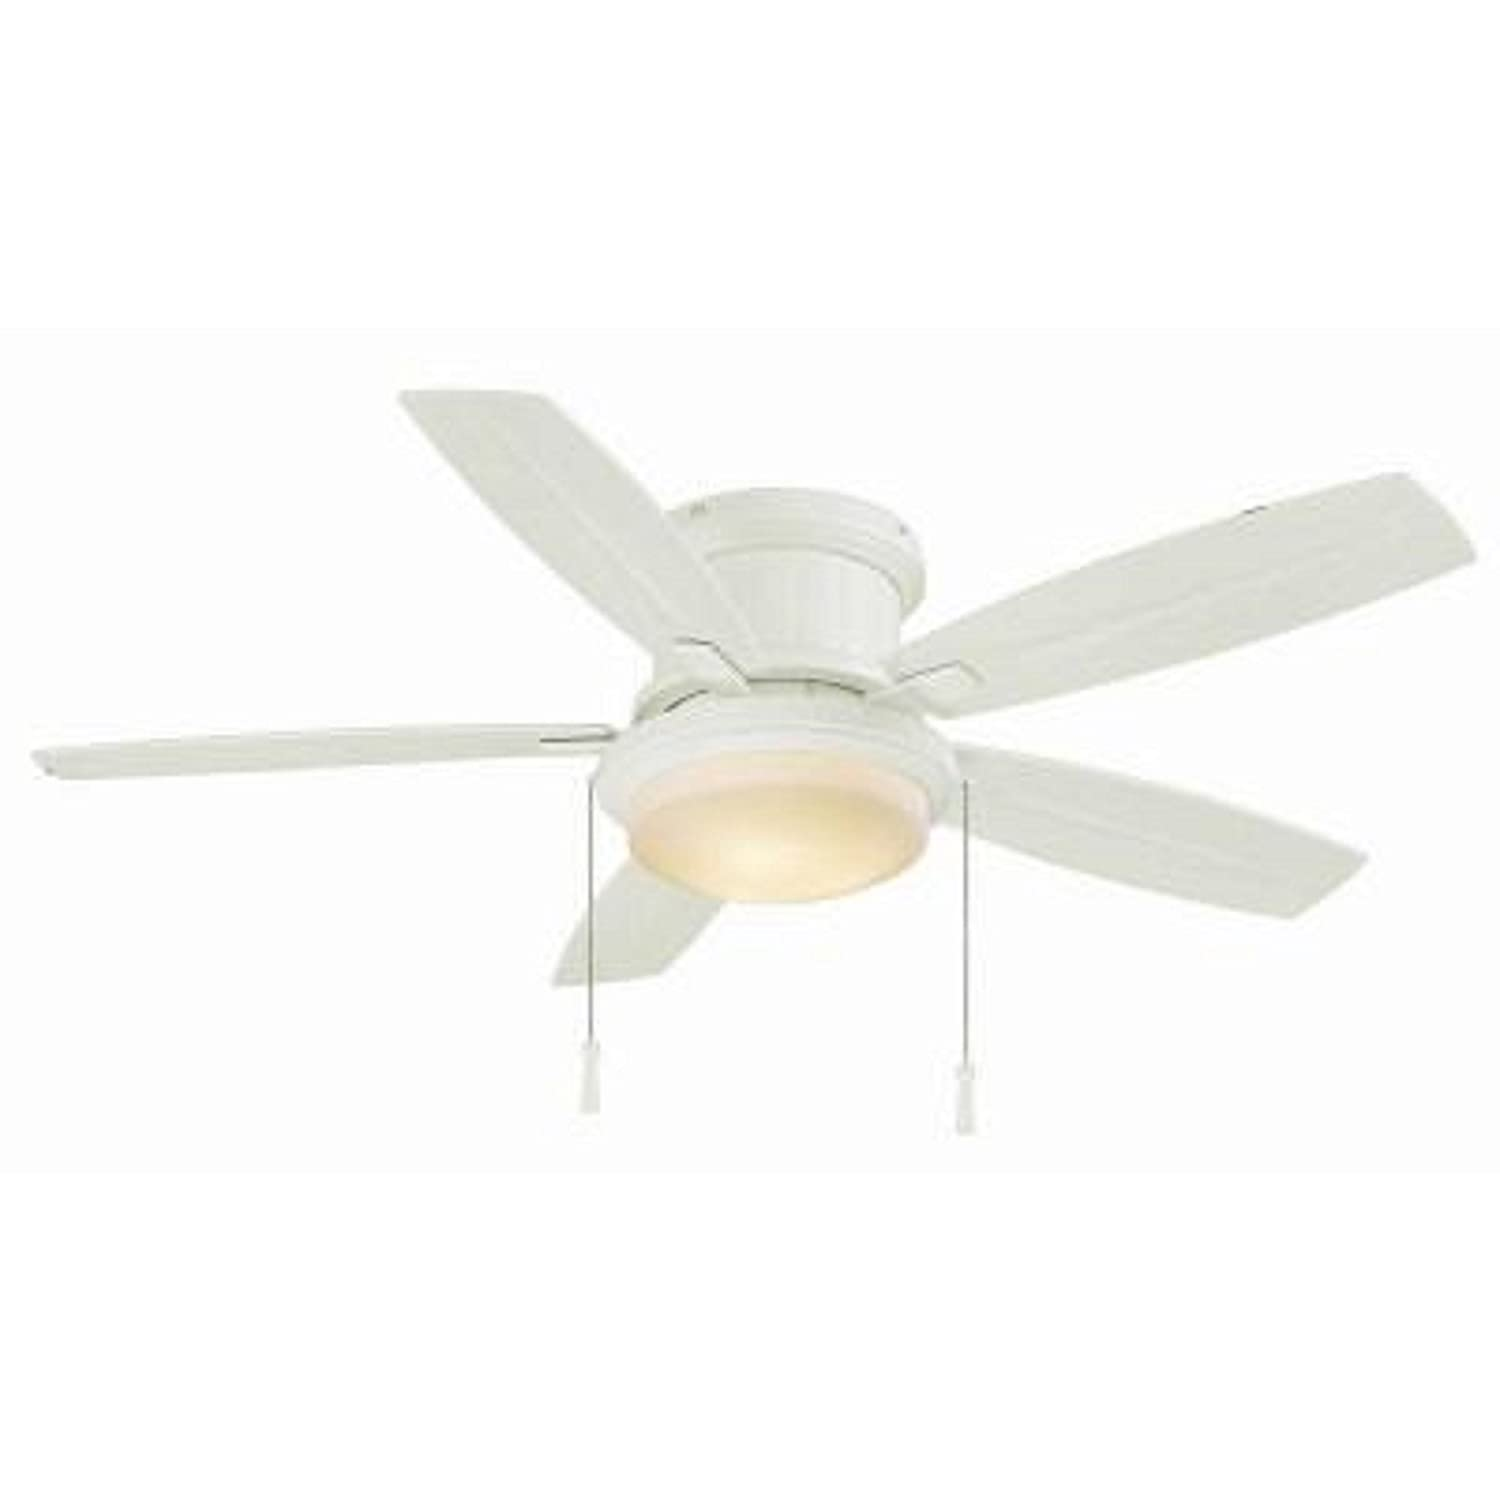 lights breeze fan fans white ceilings inch light ceiling harbor image no of with kit